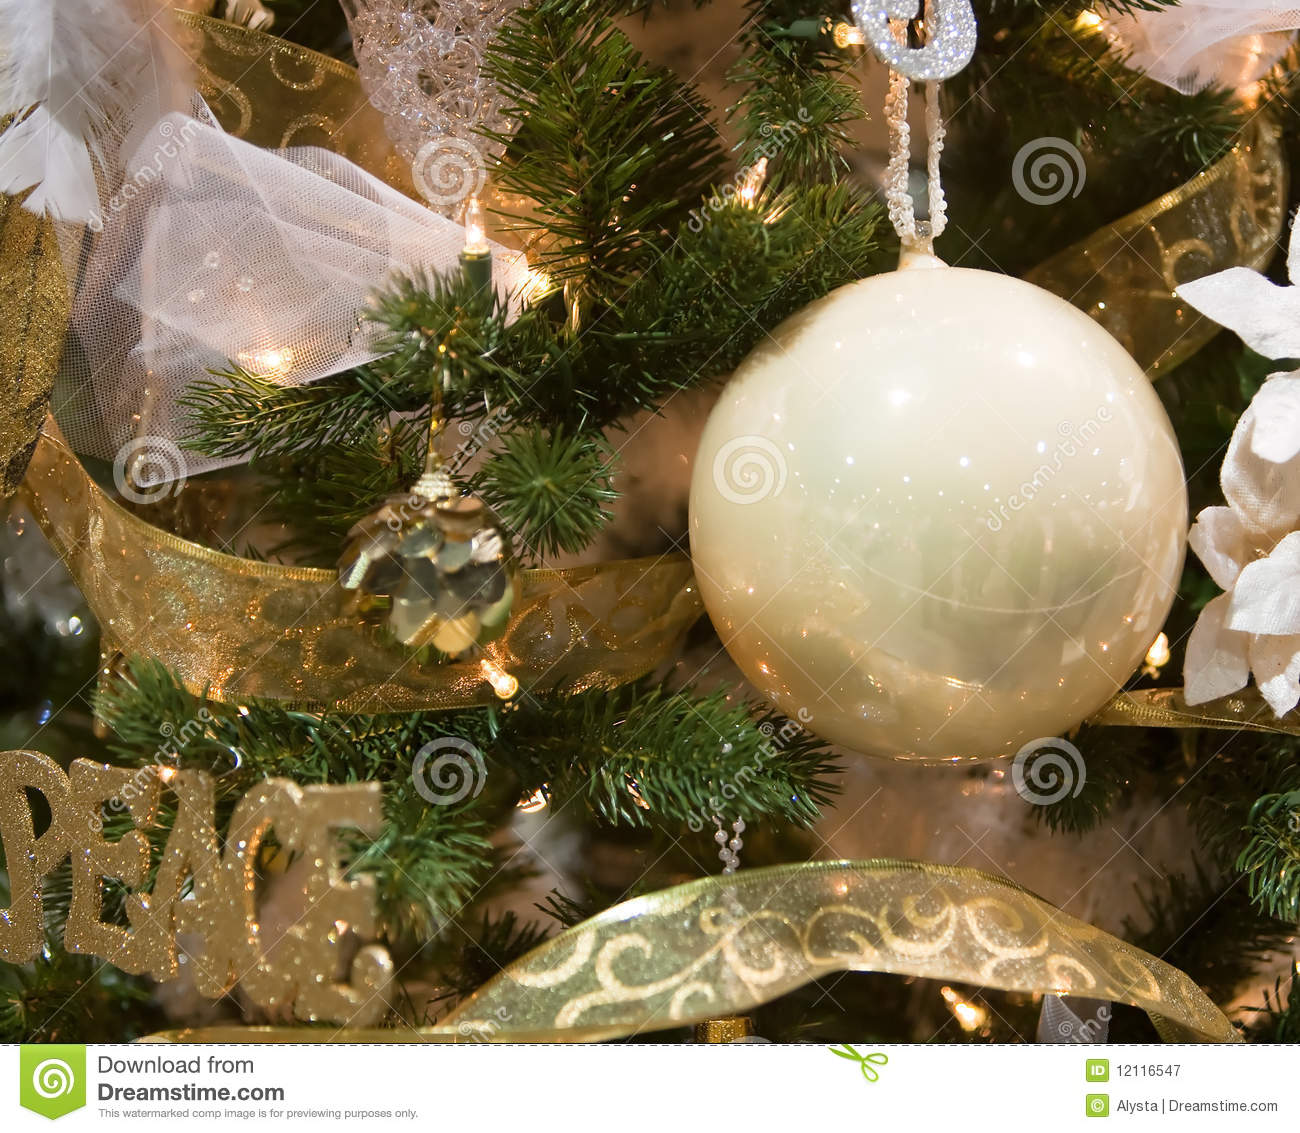 White and gold christmas tree ornaments royalty free stock for White and gold tree decorations